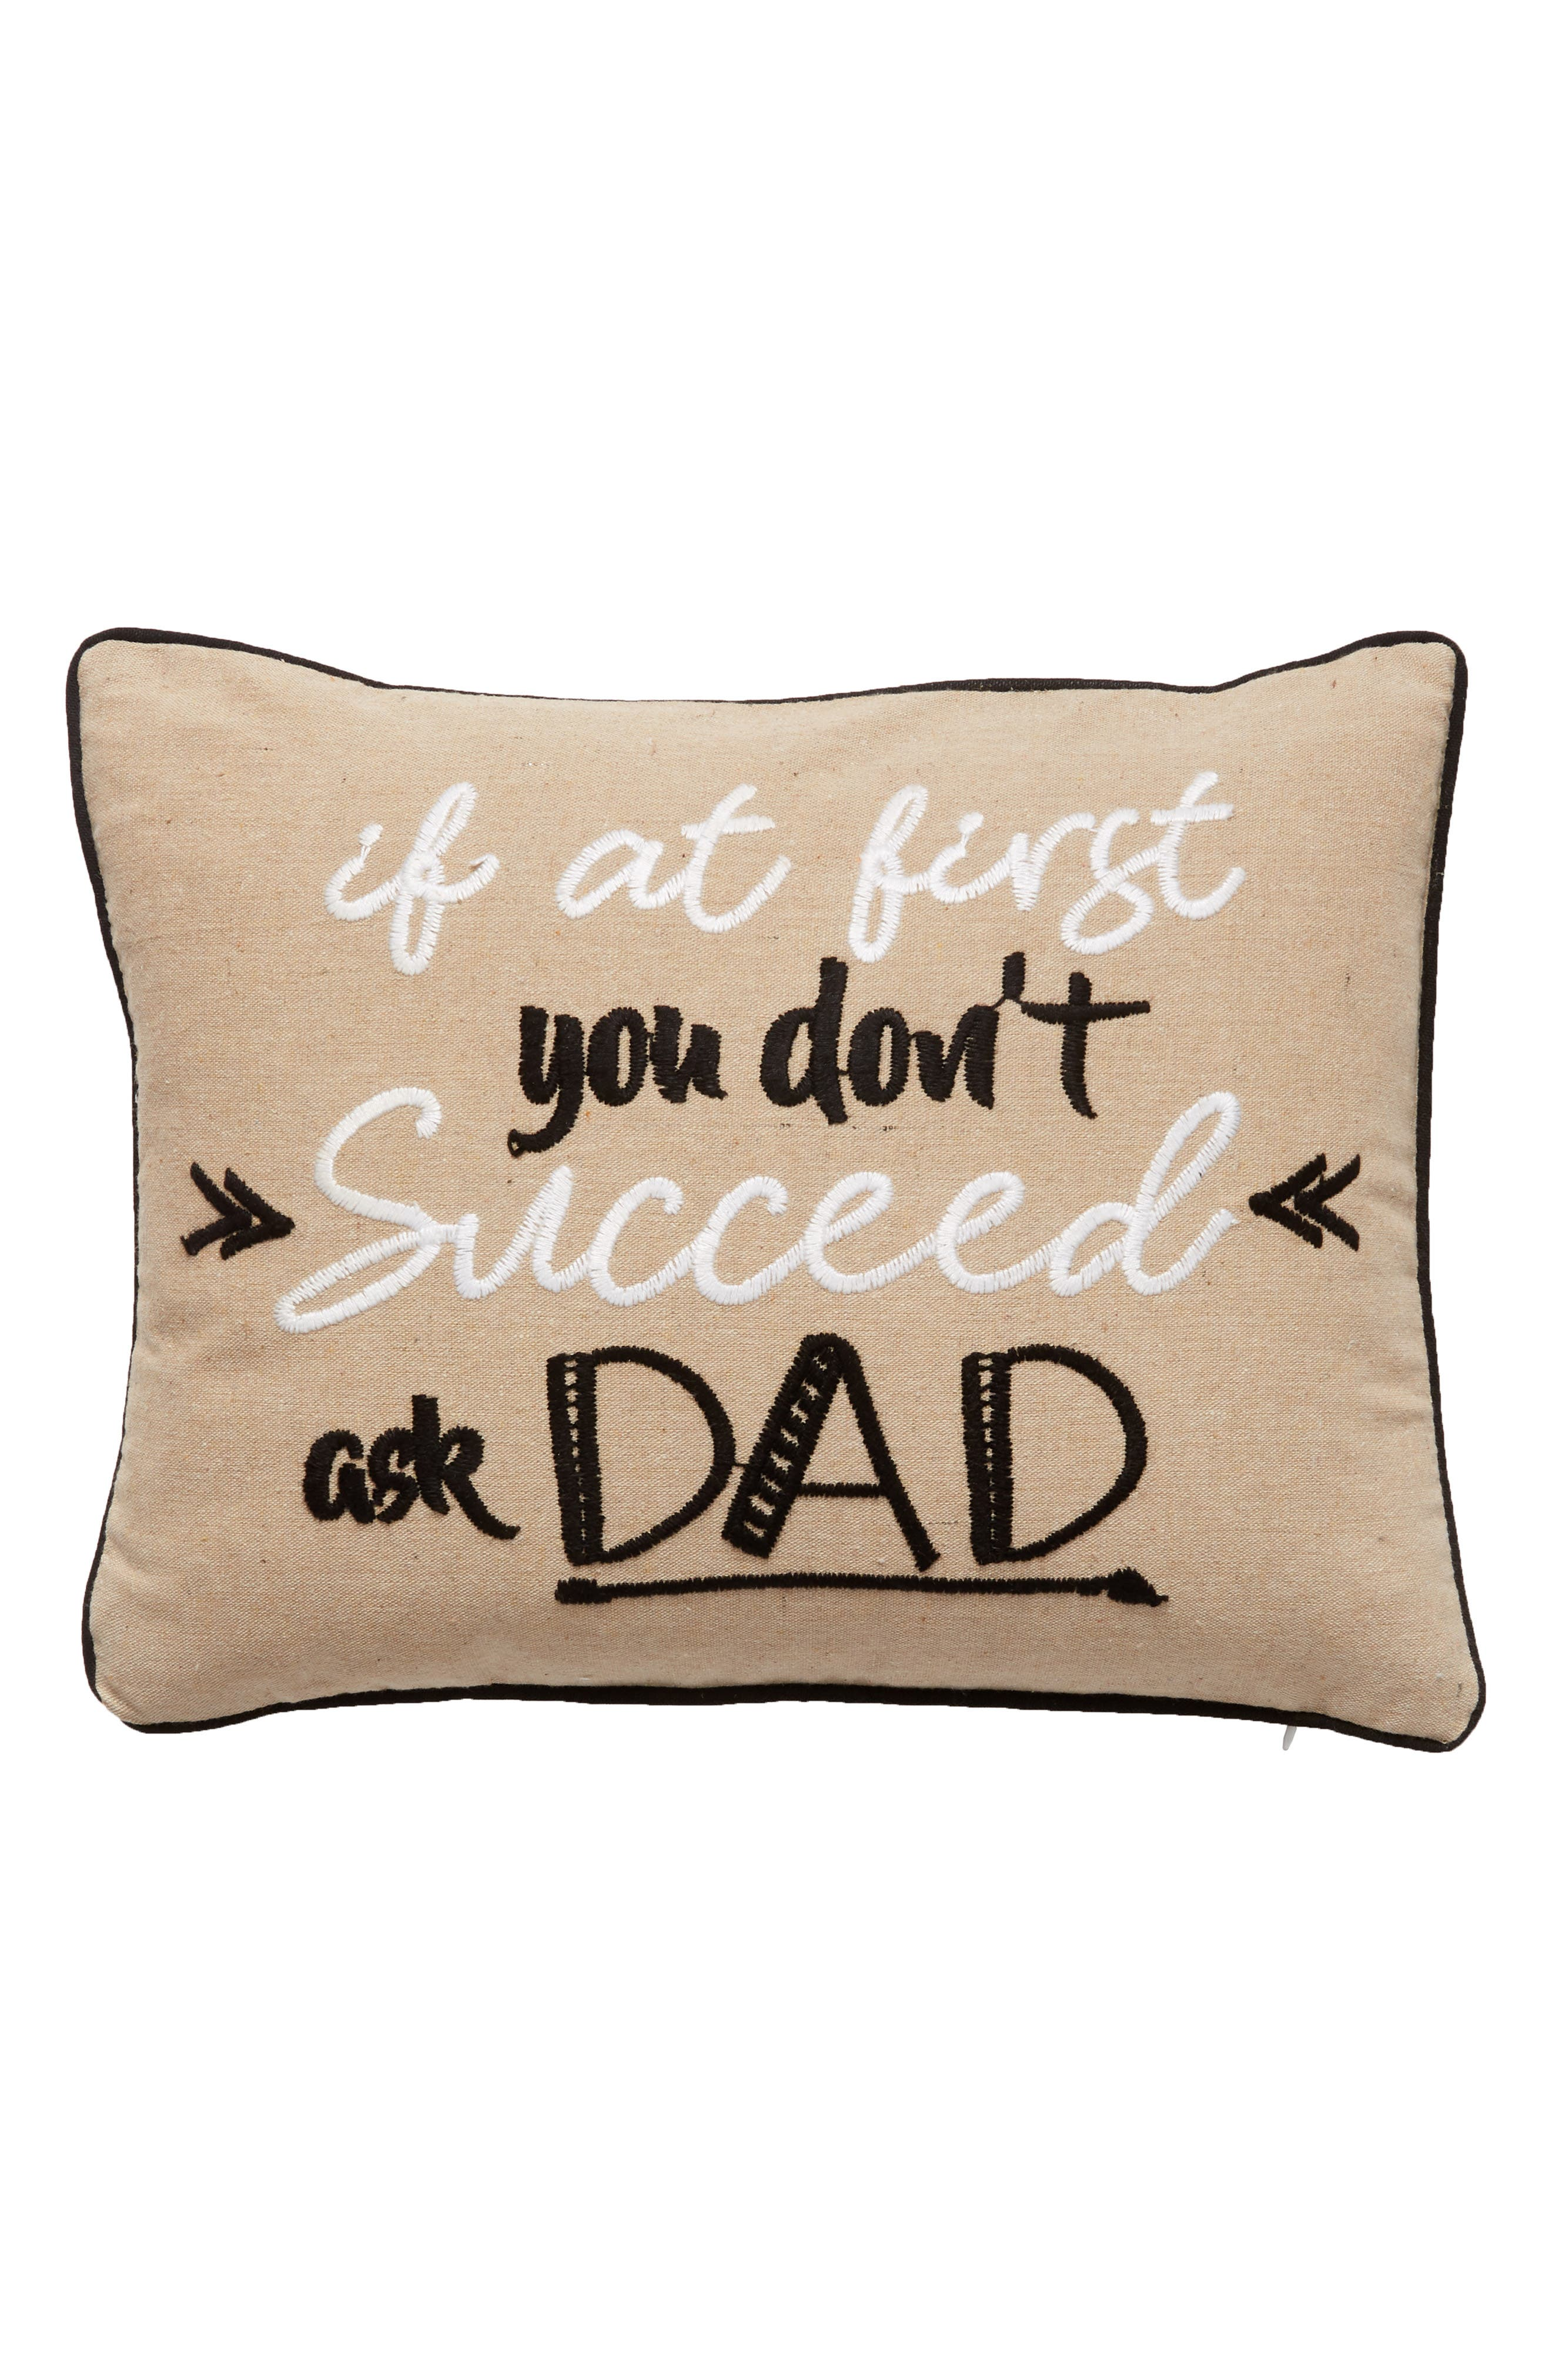 Ask Dad Accent Pillow,                         Main,                         color, 250